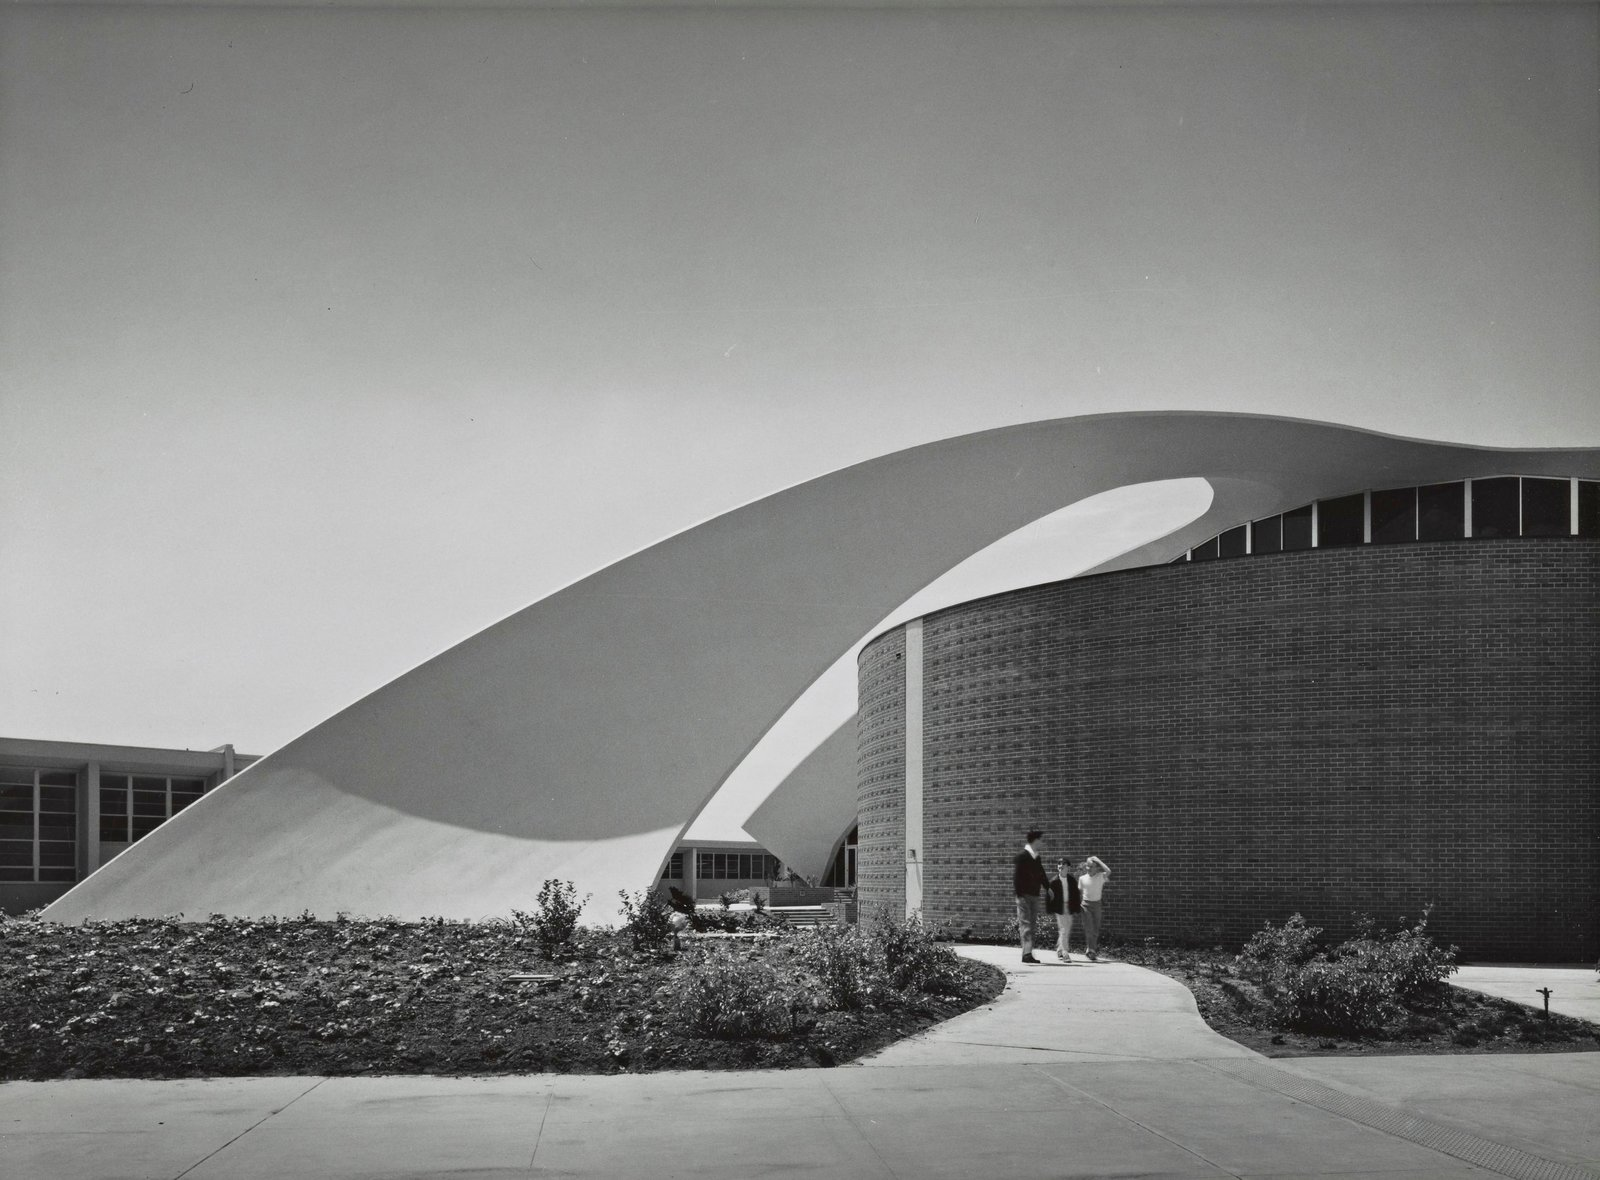 Photo by Julius Shulman ©J. Paul Getty Trust, Getty Research Institute, Los Angeles (2004.R.10)  Photo 2 of 2 in Not Your Average High School Auditorium